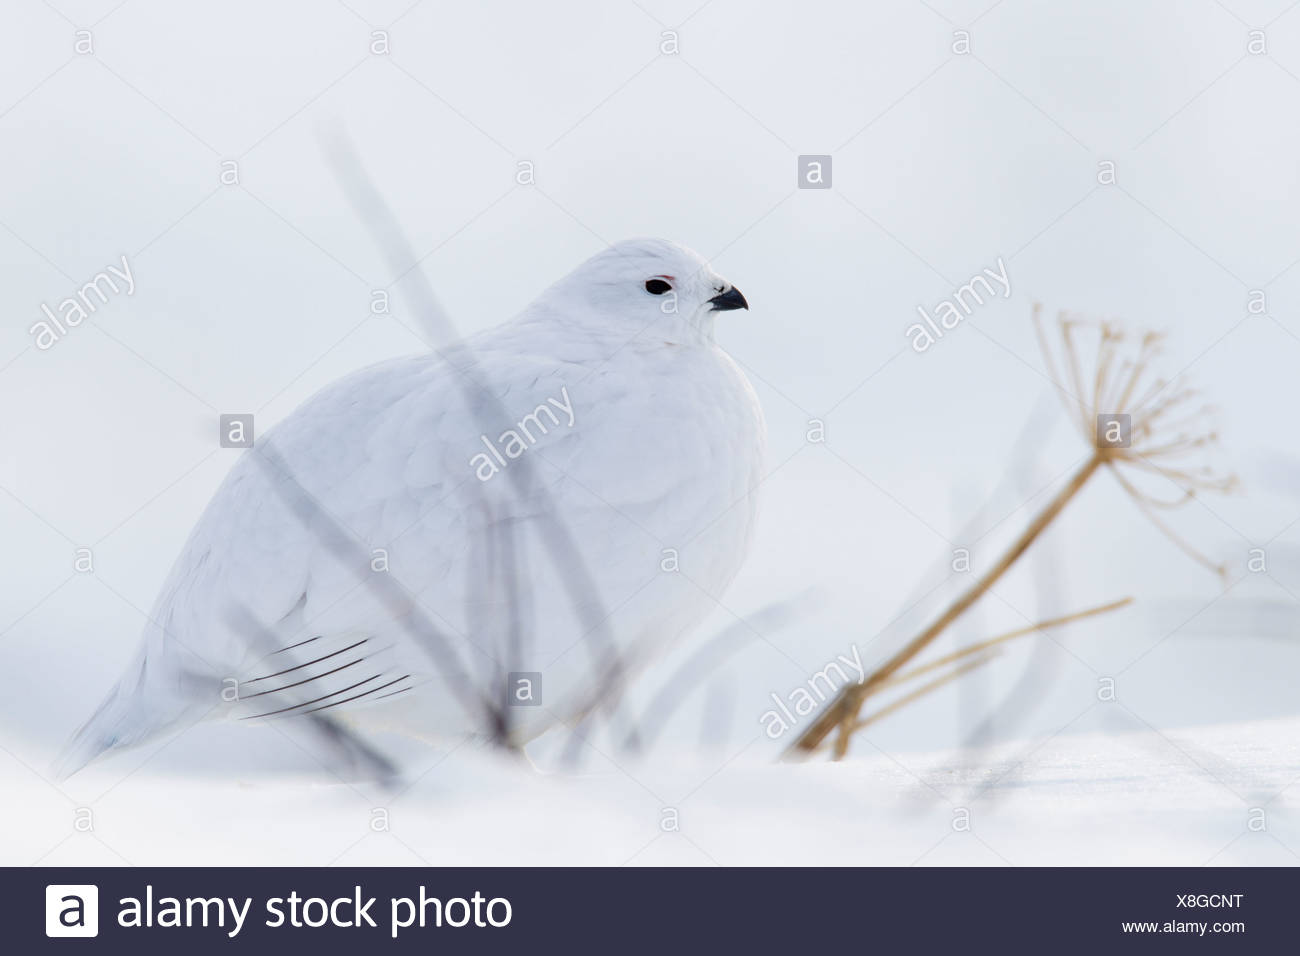 Willow Ptarmigan in white winter plumage sitting behind bare branches on snowpack, Chugach Mountains, Alaska, Winter Stock Photo